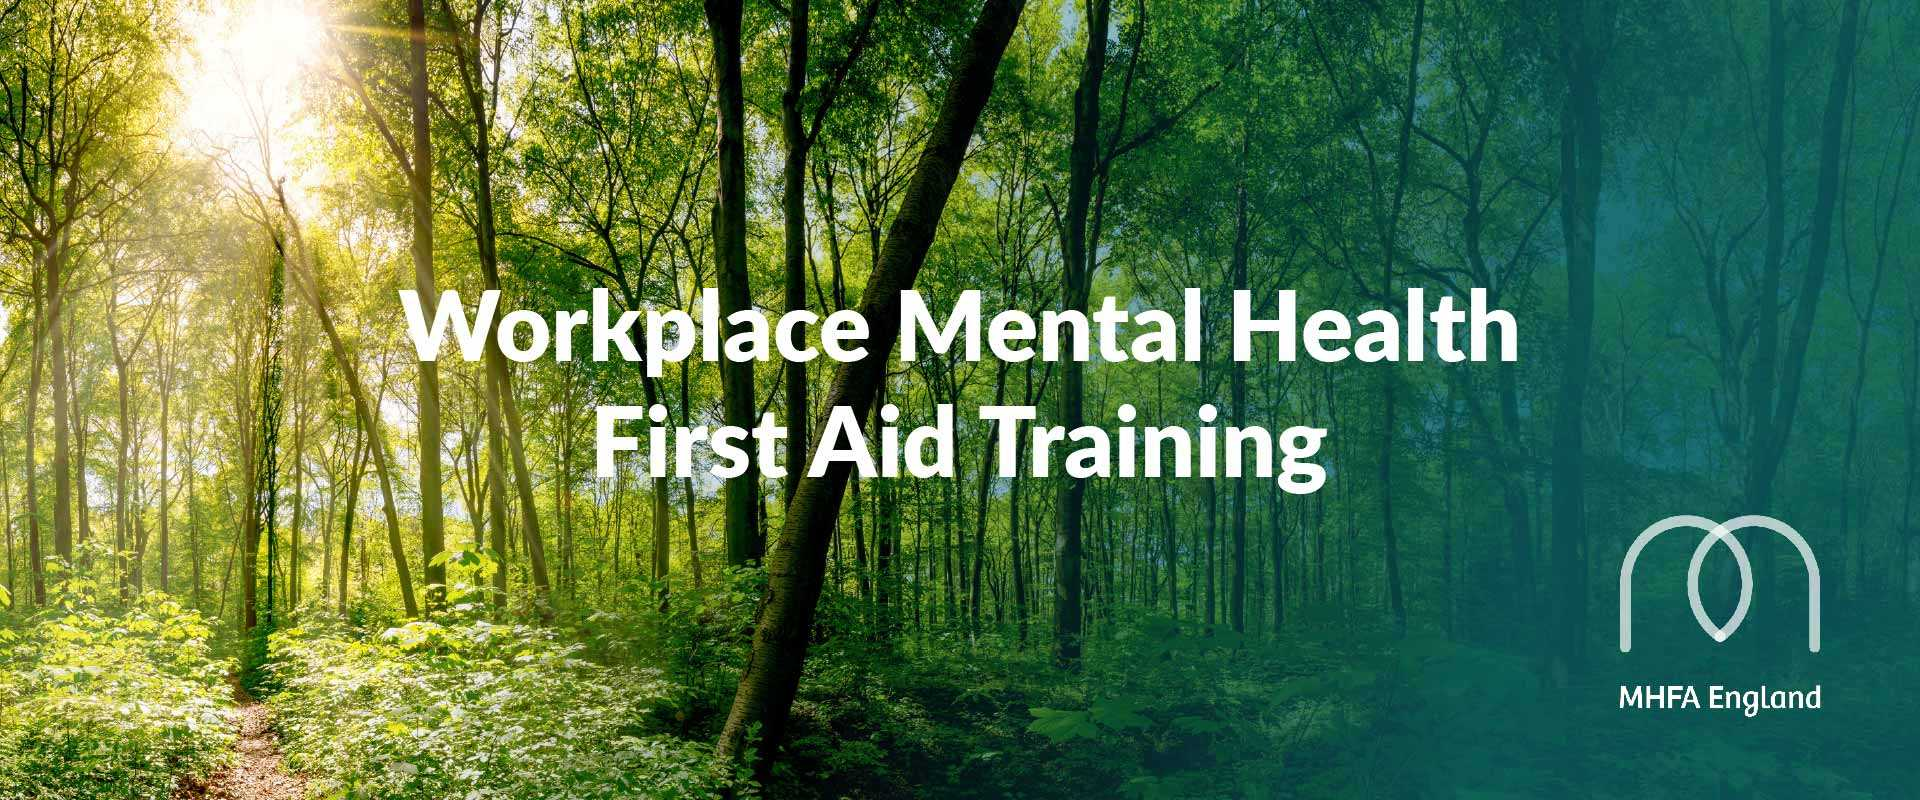 orkplace mental health first aid training